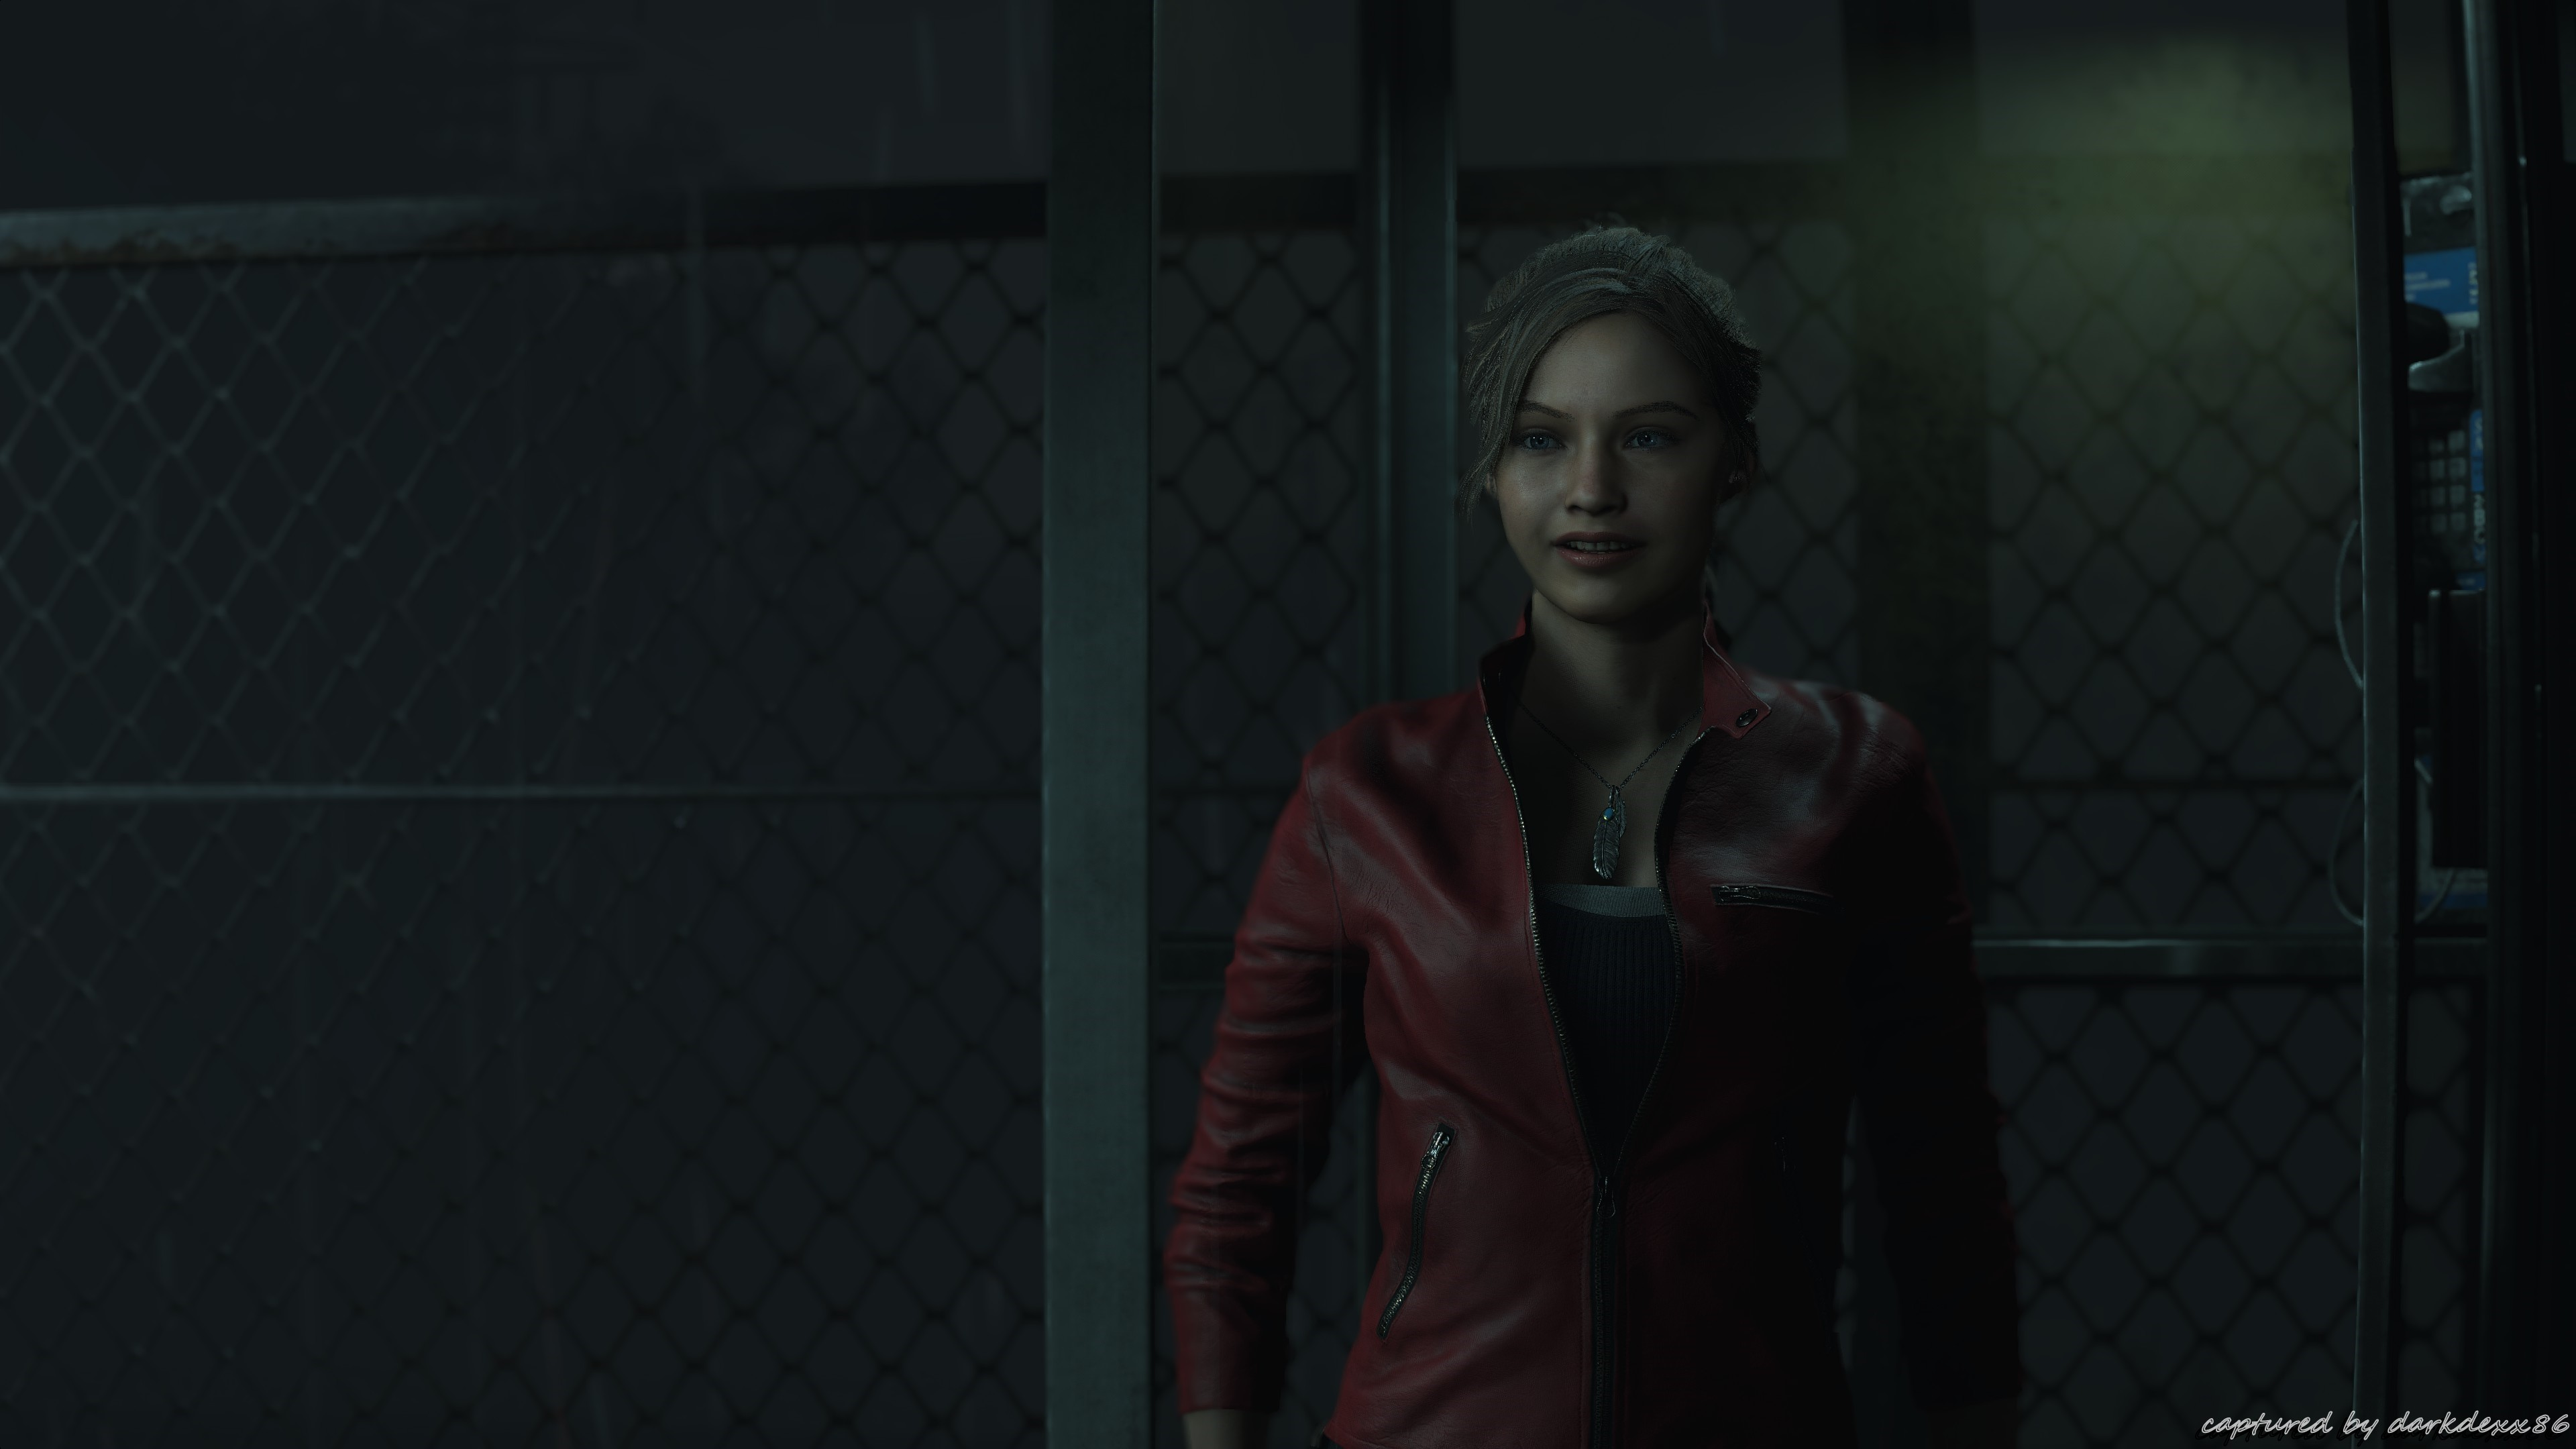 Res: 3840x2160, Resident Evil 2 Biohazard 4K pic002 * Claire Redfield * Max Details and  Shadows * 4K